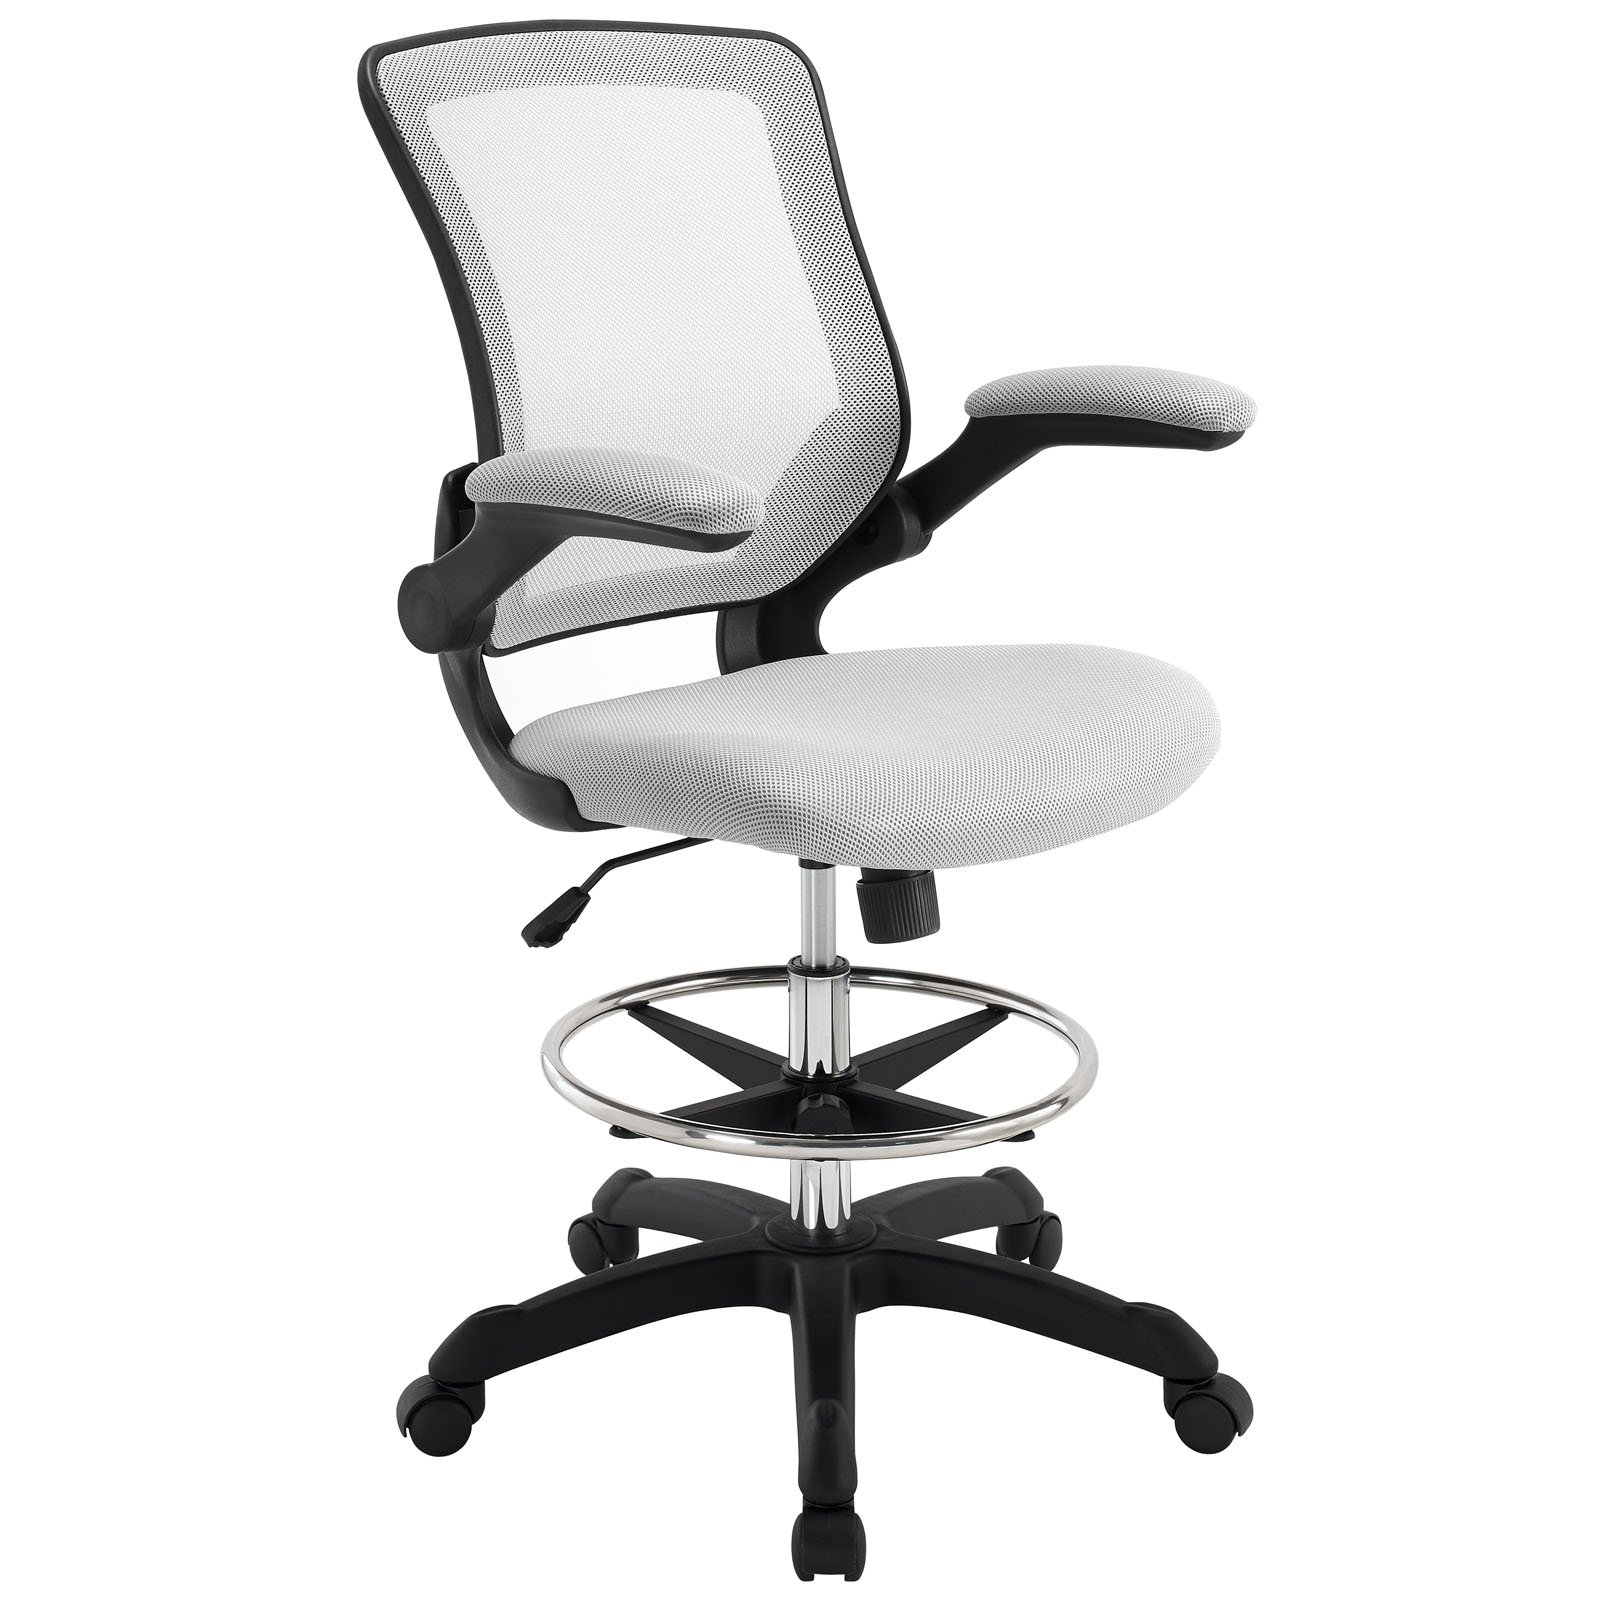 Details about Modway Drafting Stool Chair Seat Gray Home Office Furniture  41 x 41 x 41.41 New